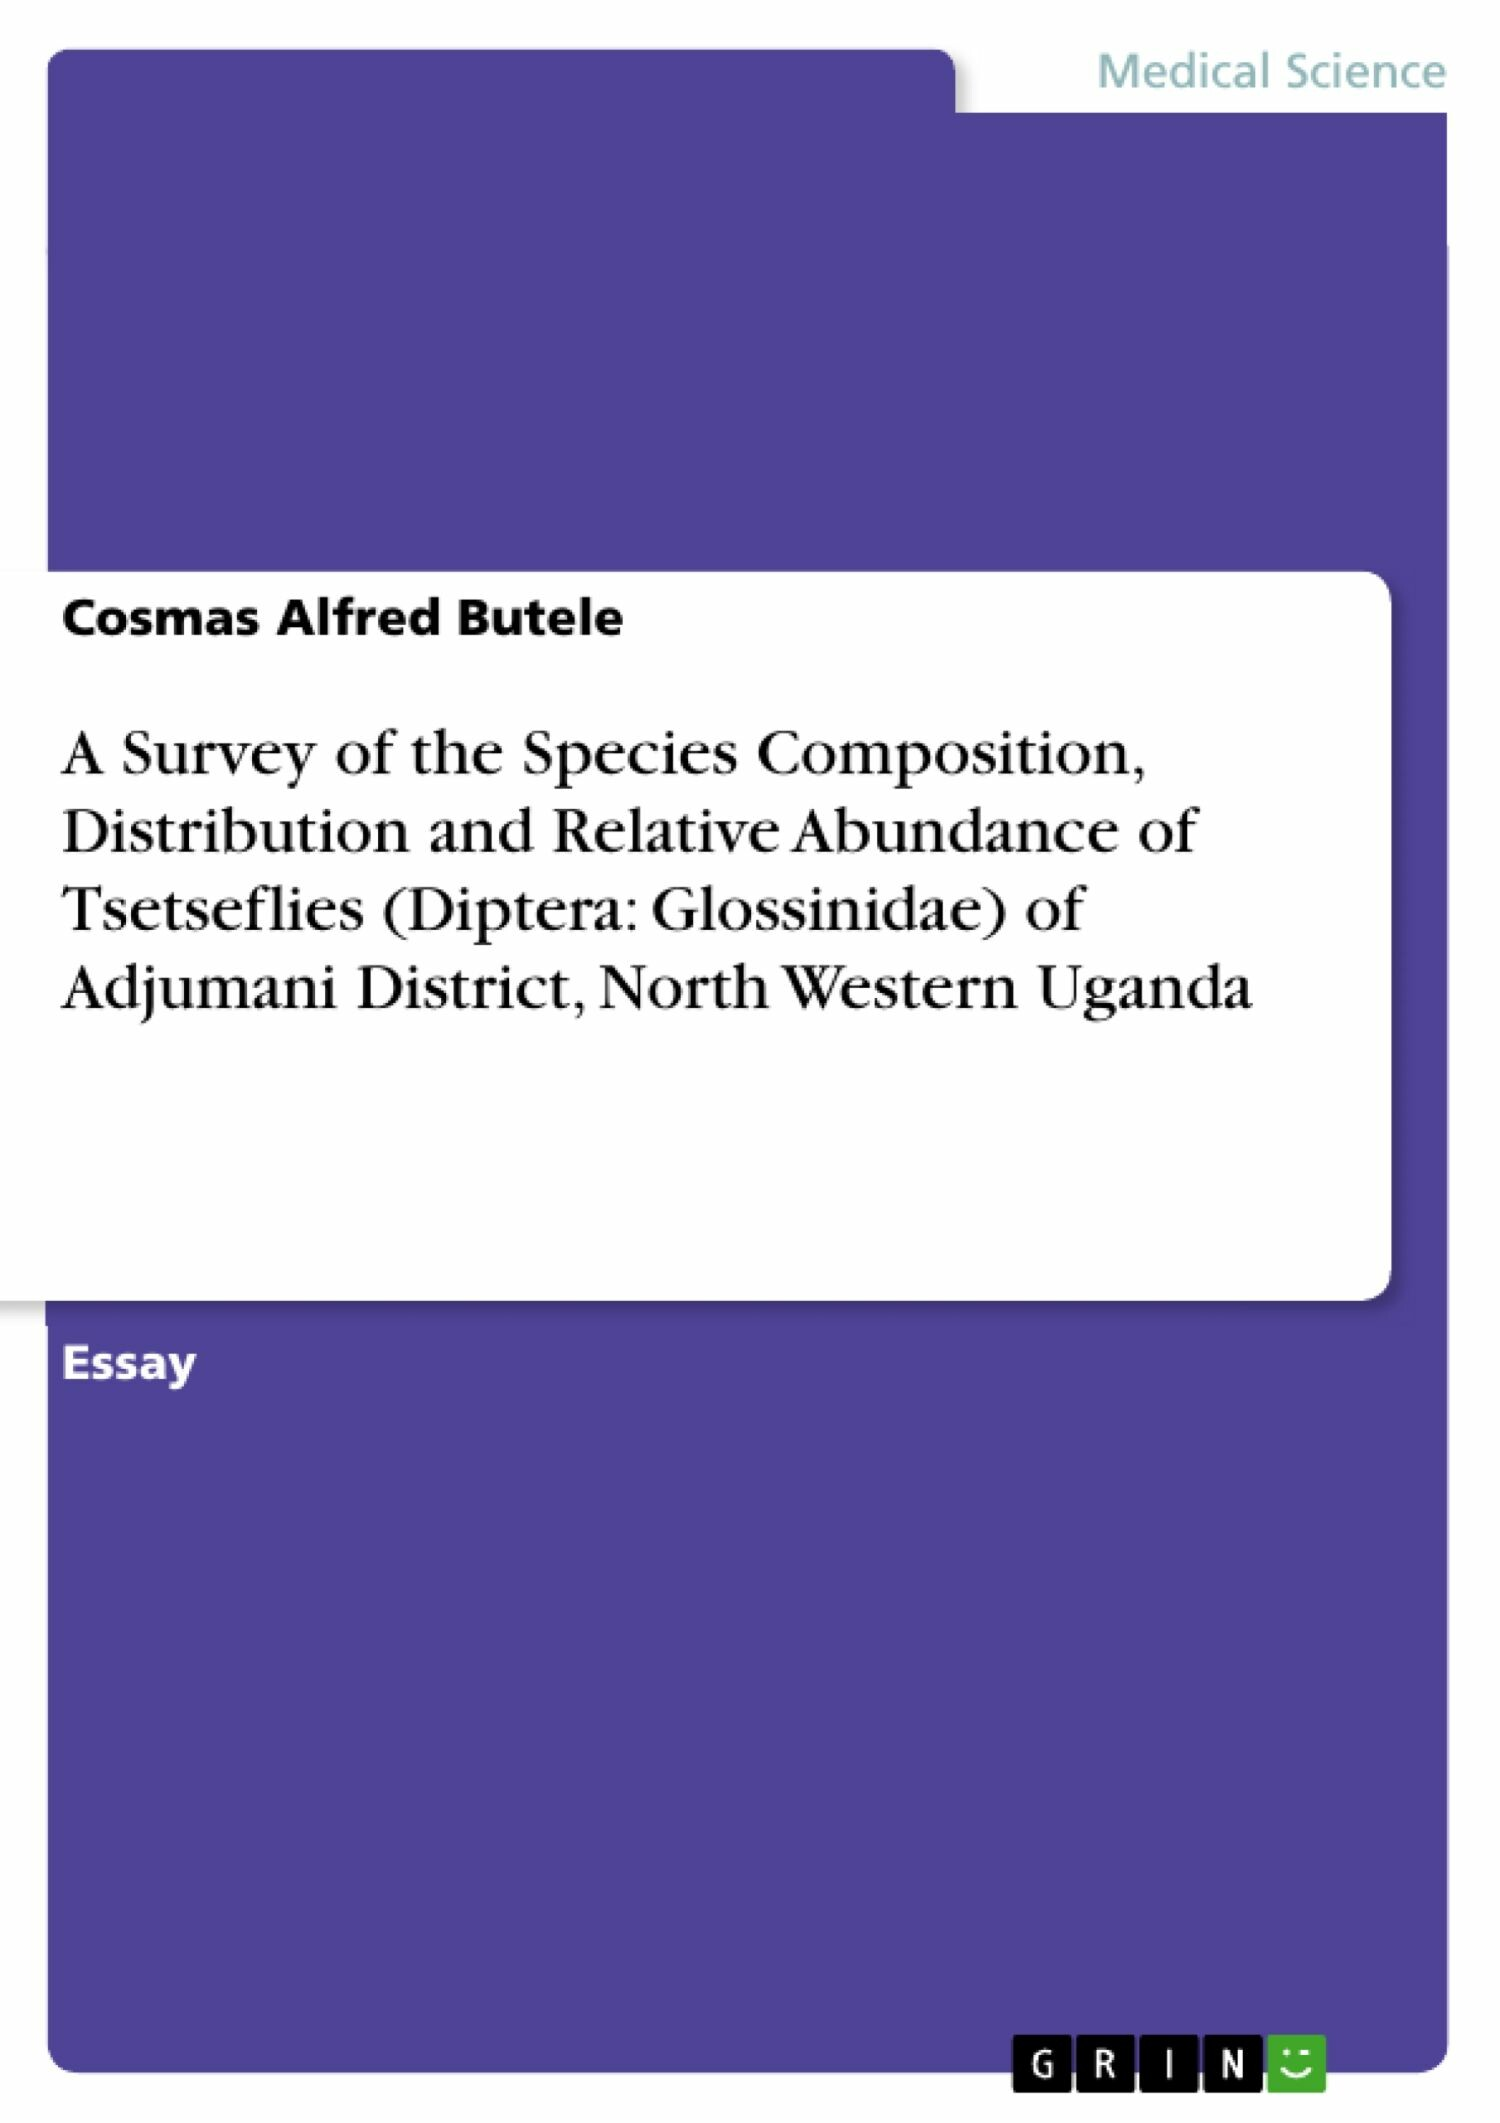 A Survey of the Species Composition, Distribution and Relative Abundance of Tsetseflies (Diptera: Glossinidae) of Adjumani District, North Western Uganda